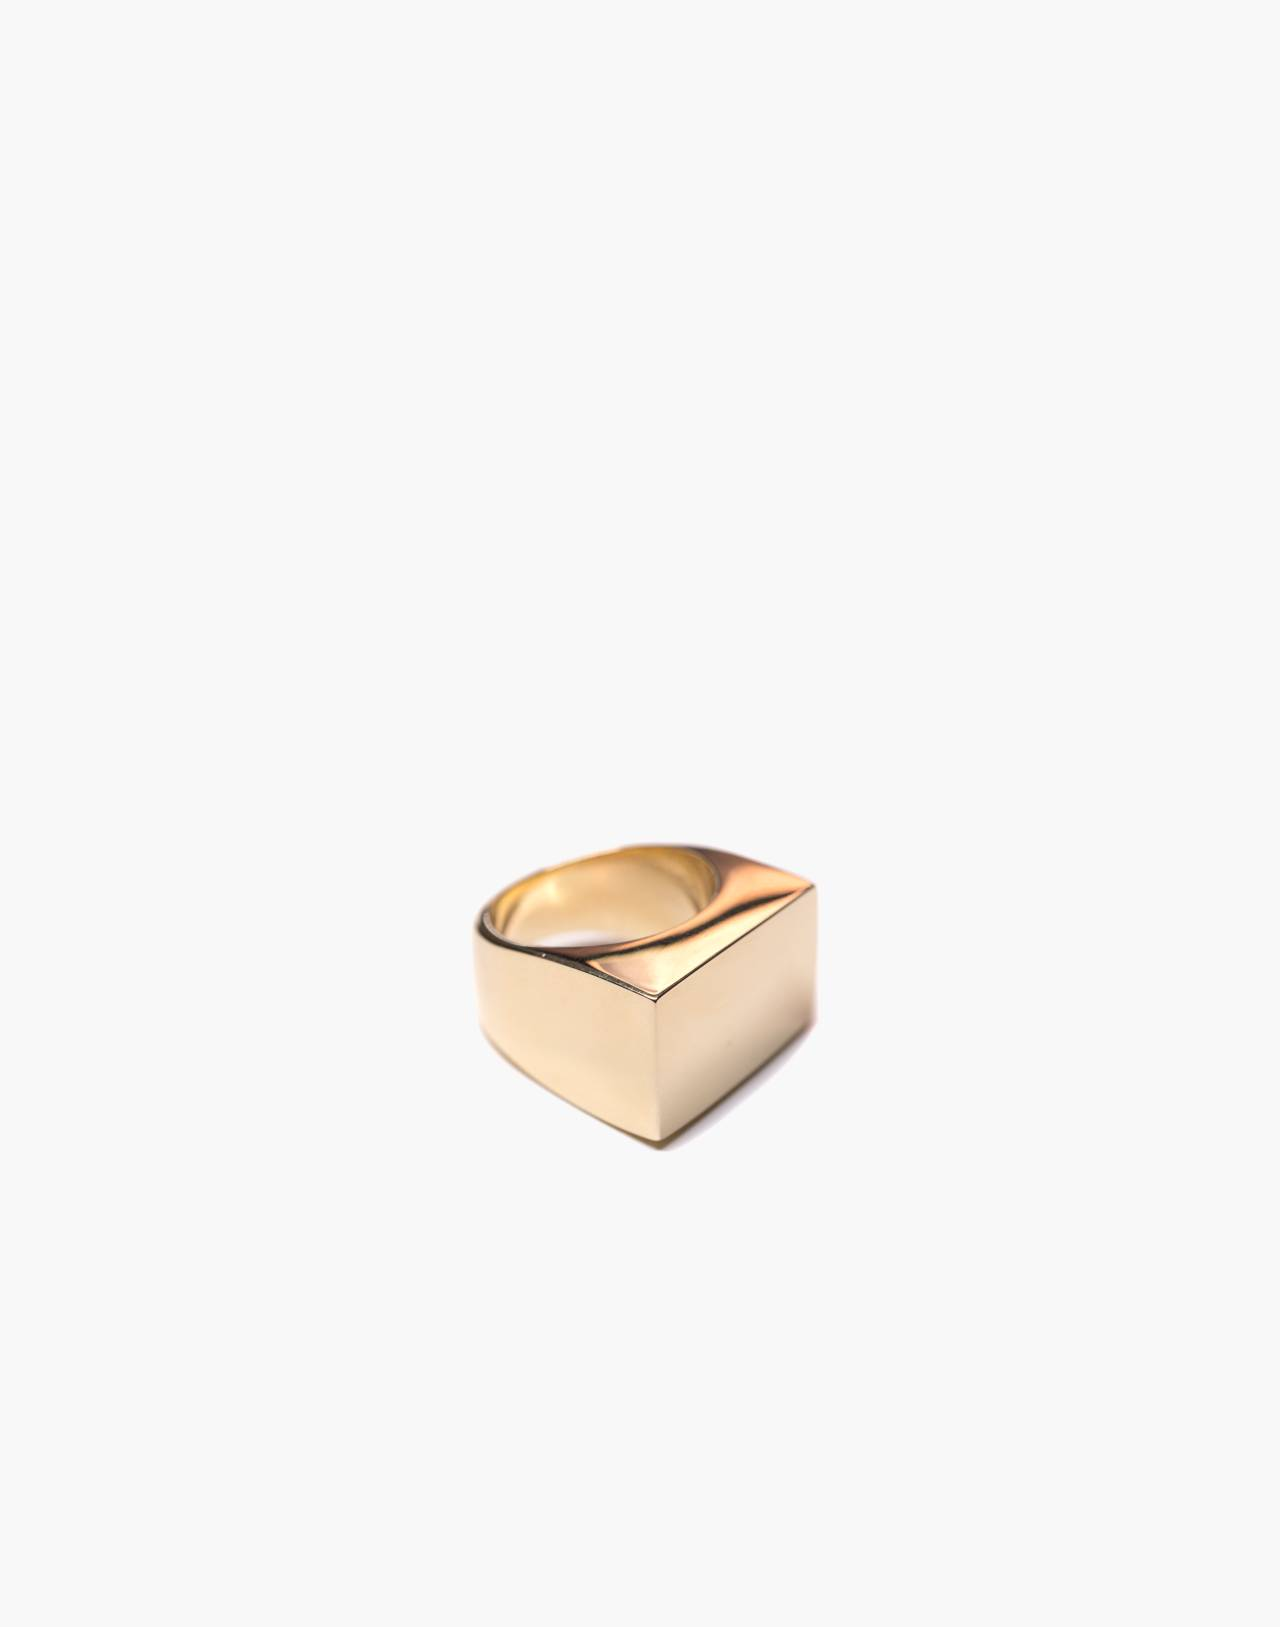 Charlotte Cauwe Studio Brass Large Modern Signet Ring in gold image 1